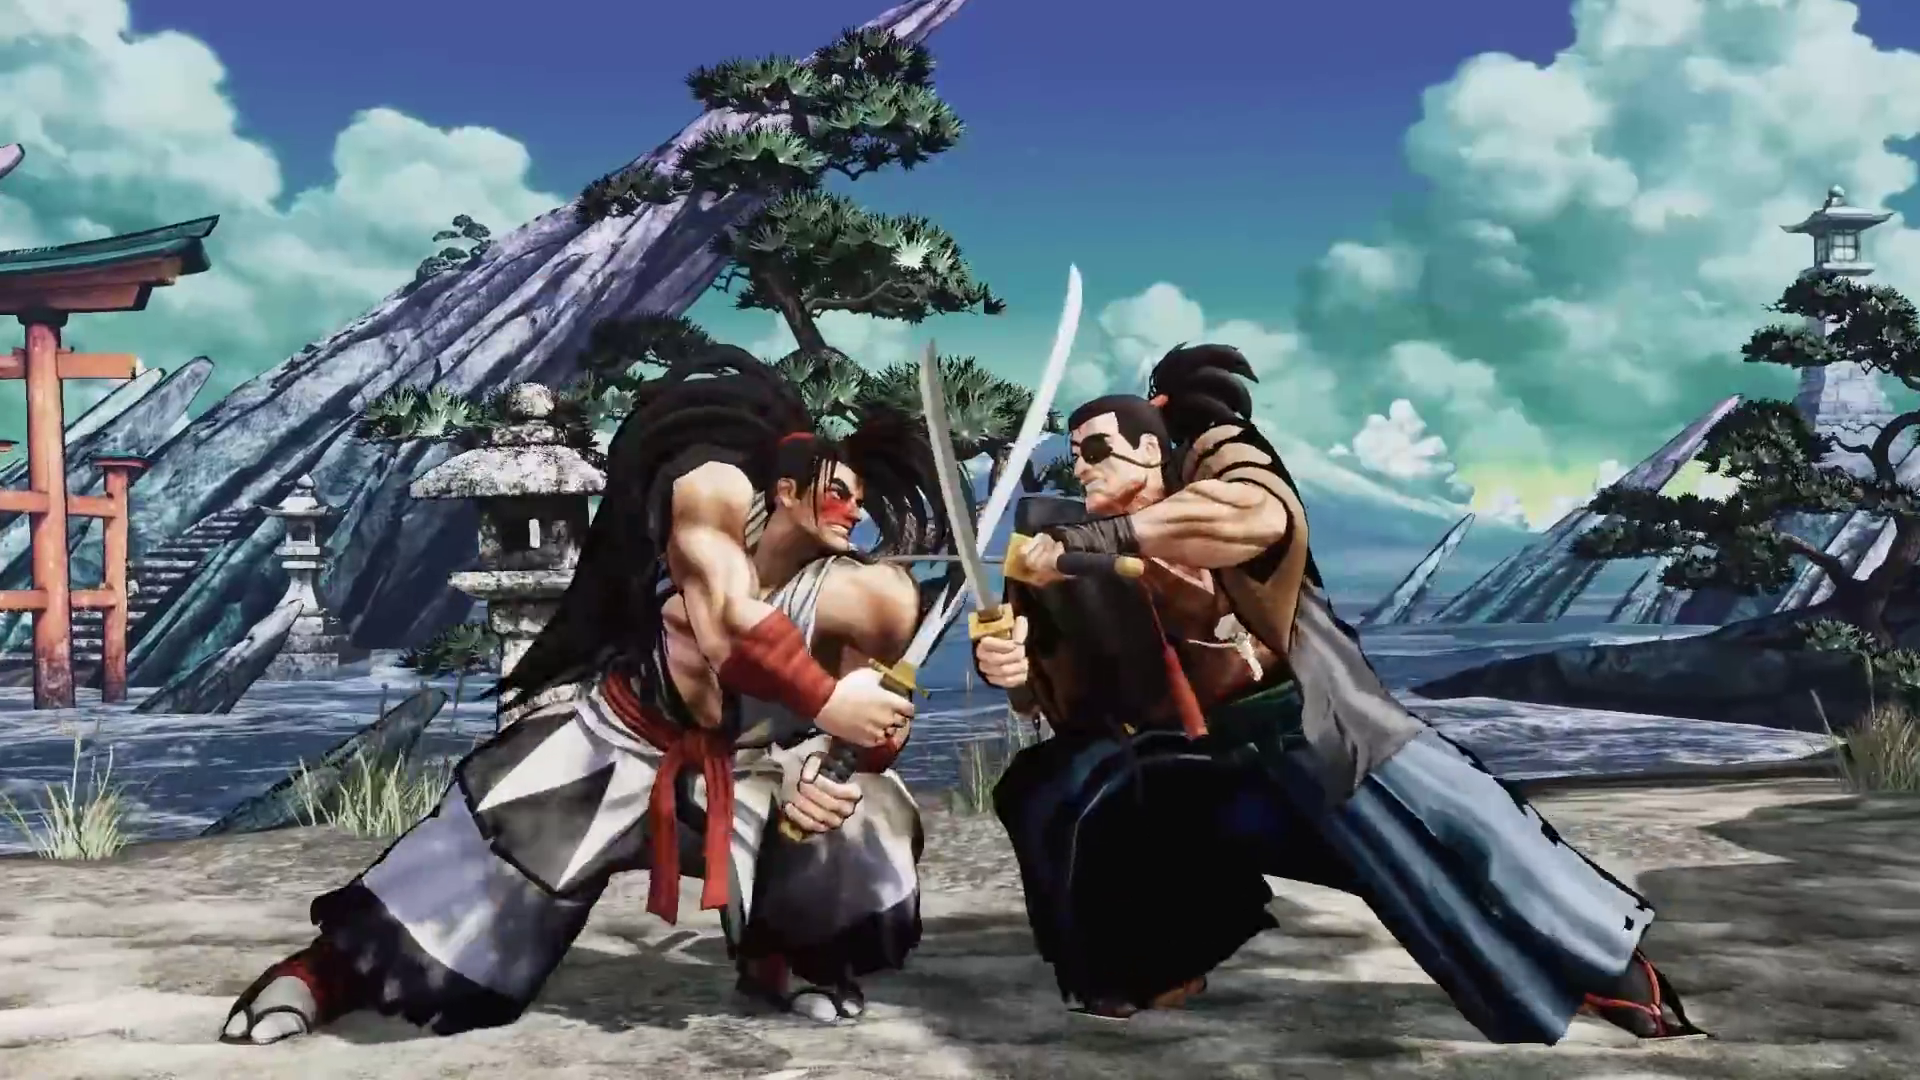 3d Animation Pc Wallpaper Samurai Shodown Samurai Spirits 2018 Tfg Preview